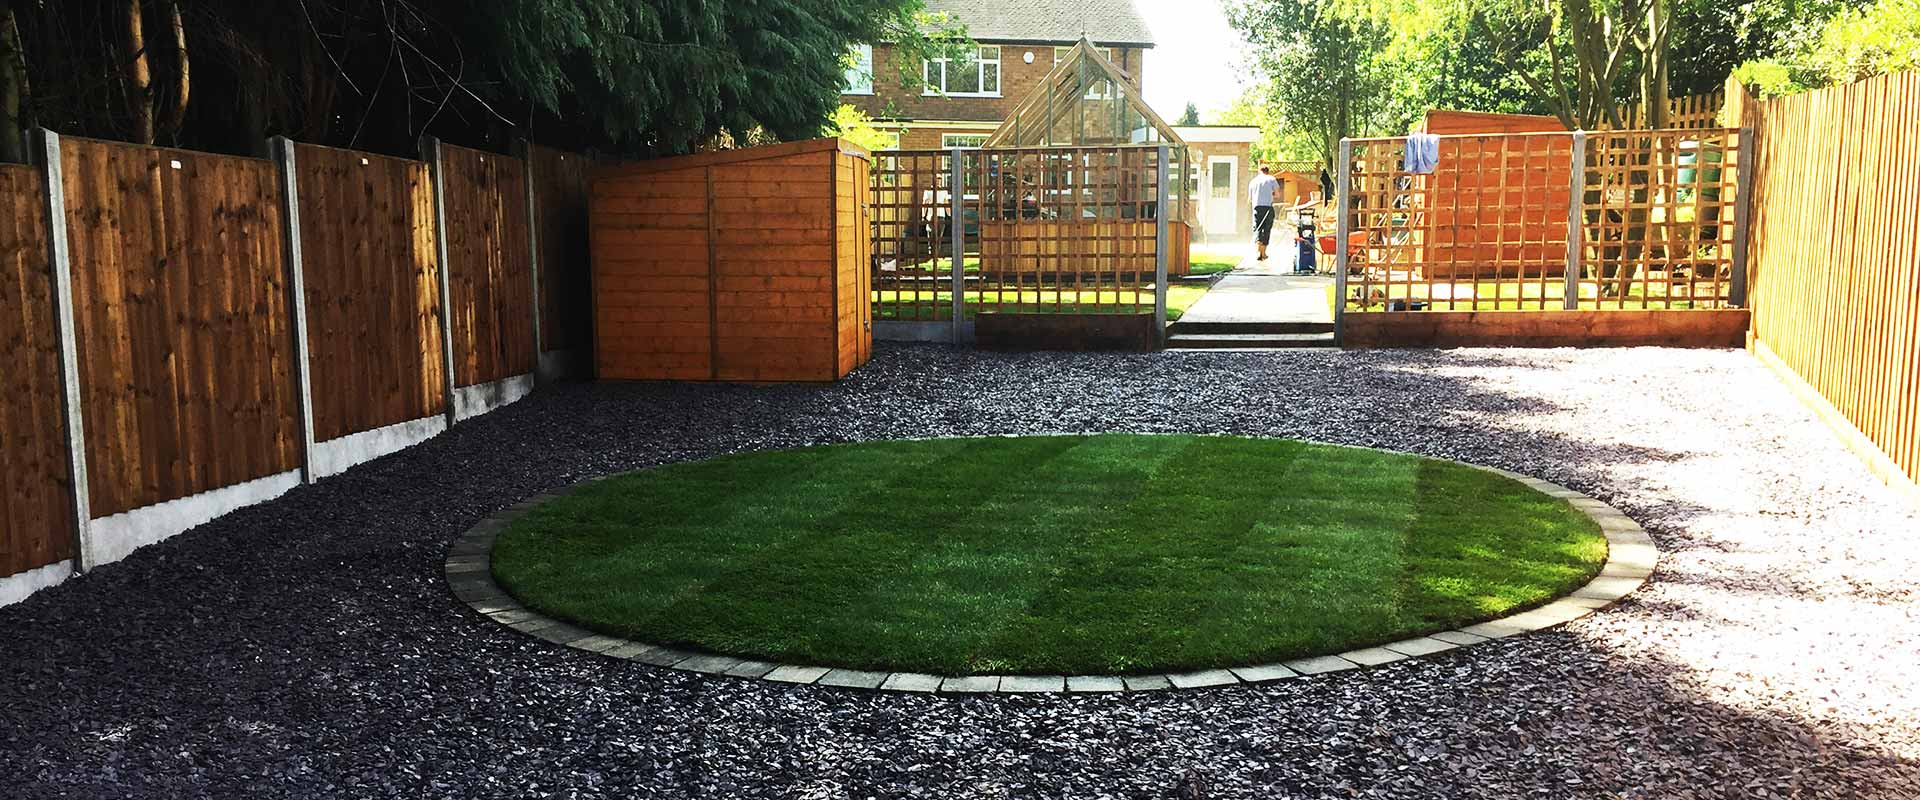 Driveway and Landscaping Services Birmingham